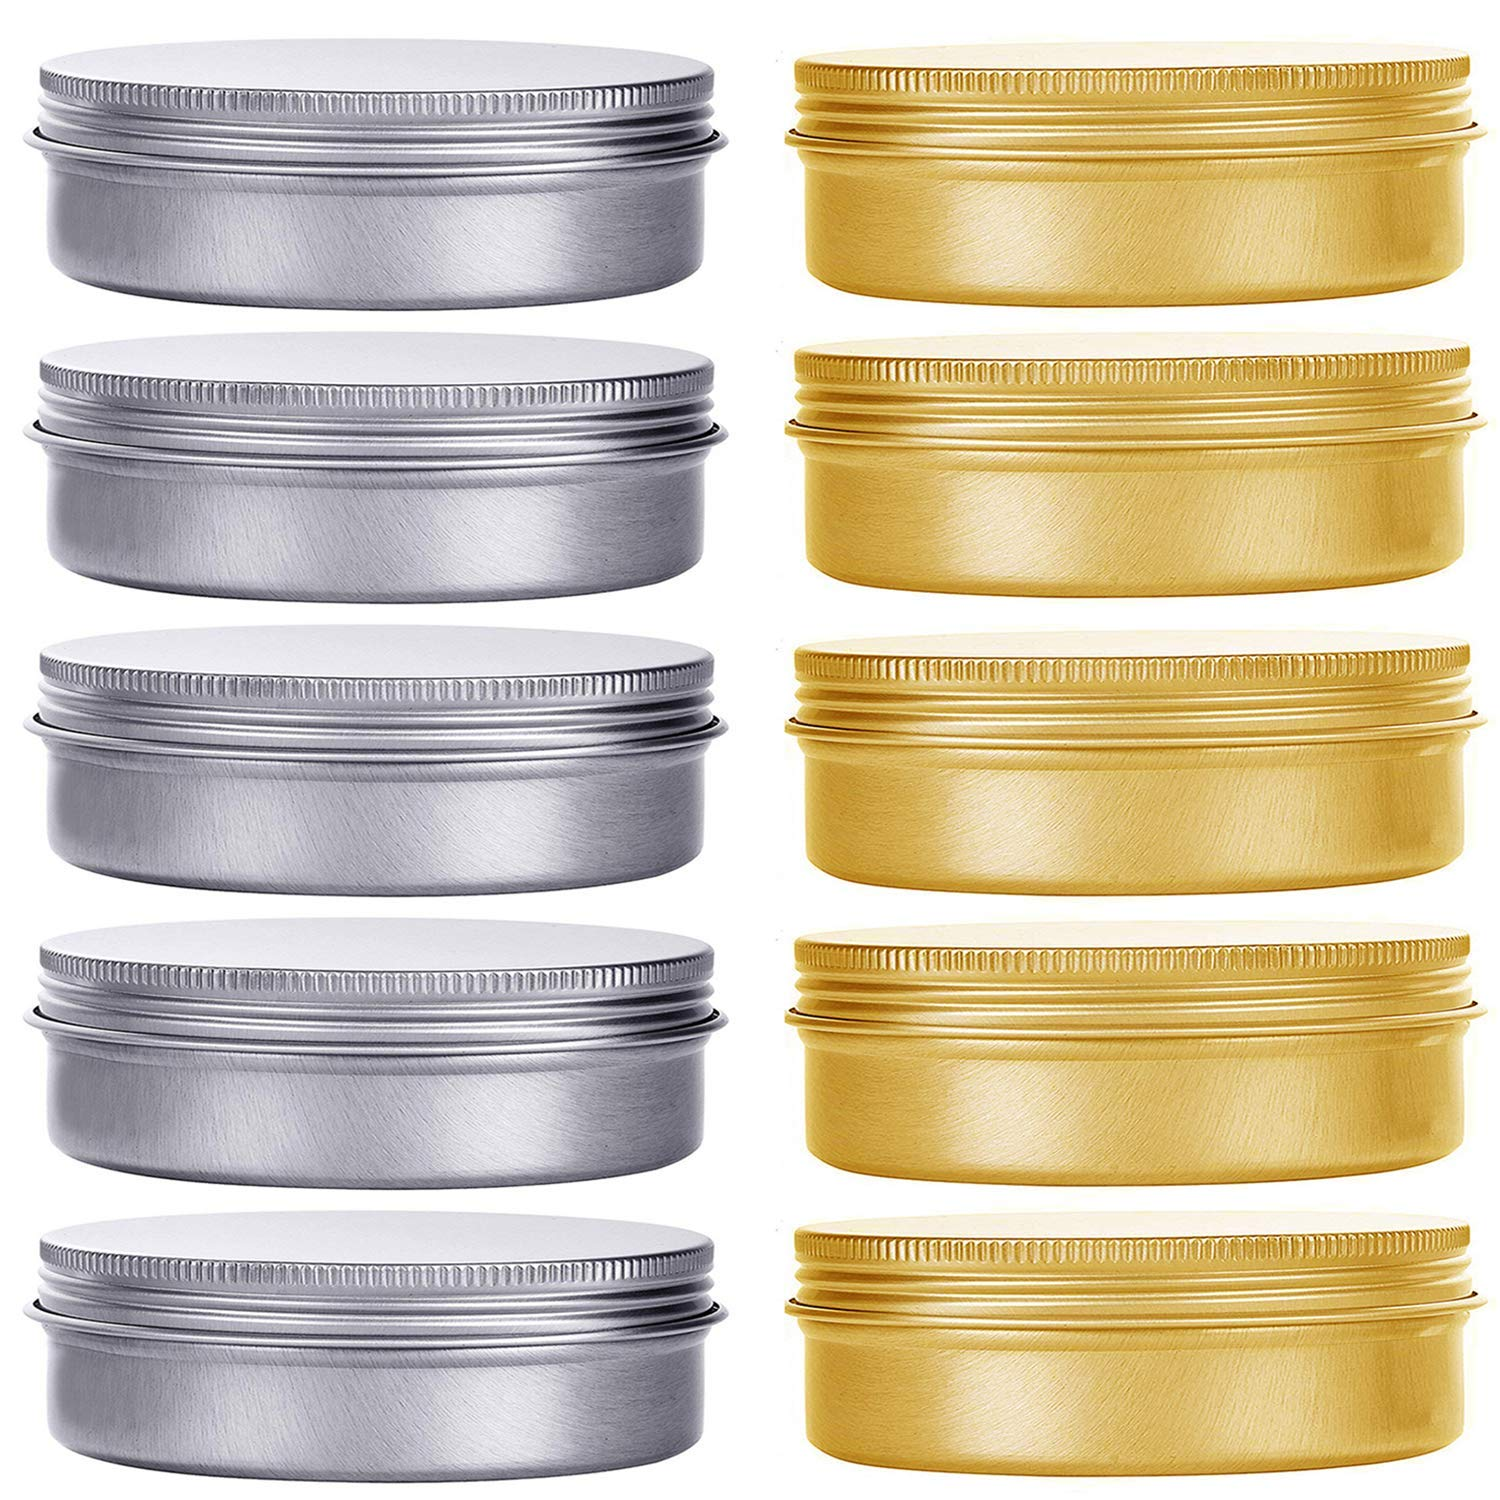 HNXAZG 2 Ounce Aluminum Tin Cans Metal Empty Tins with Screw Top Lids Round 10 Pack for Store Spices, Cosmetic, Lip Balm, Candles, 60 mL.